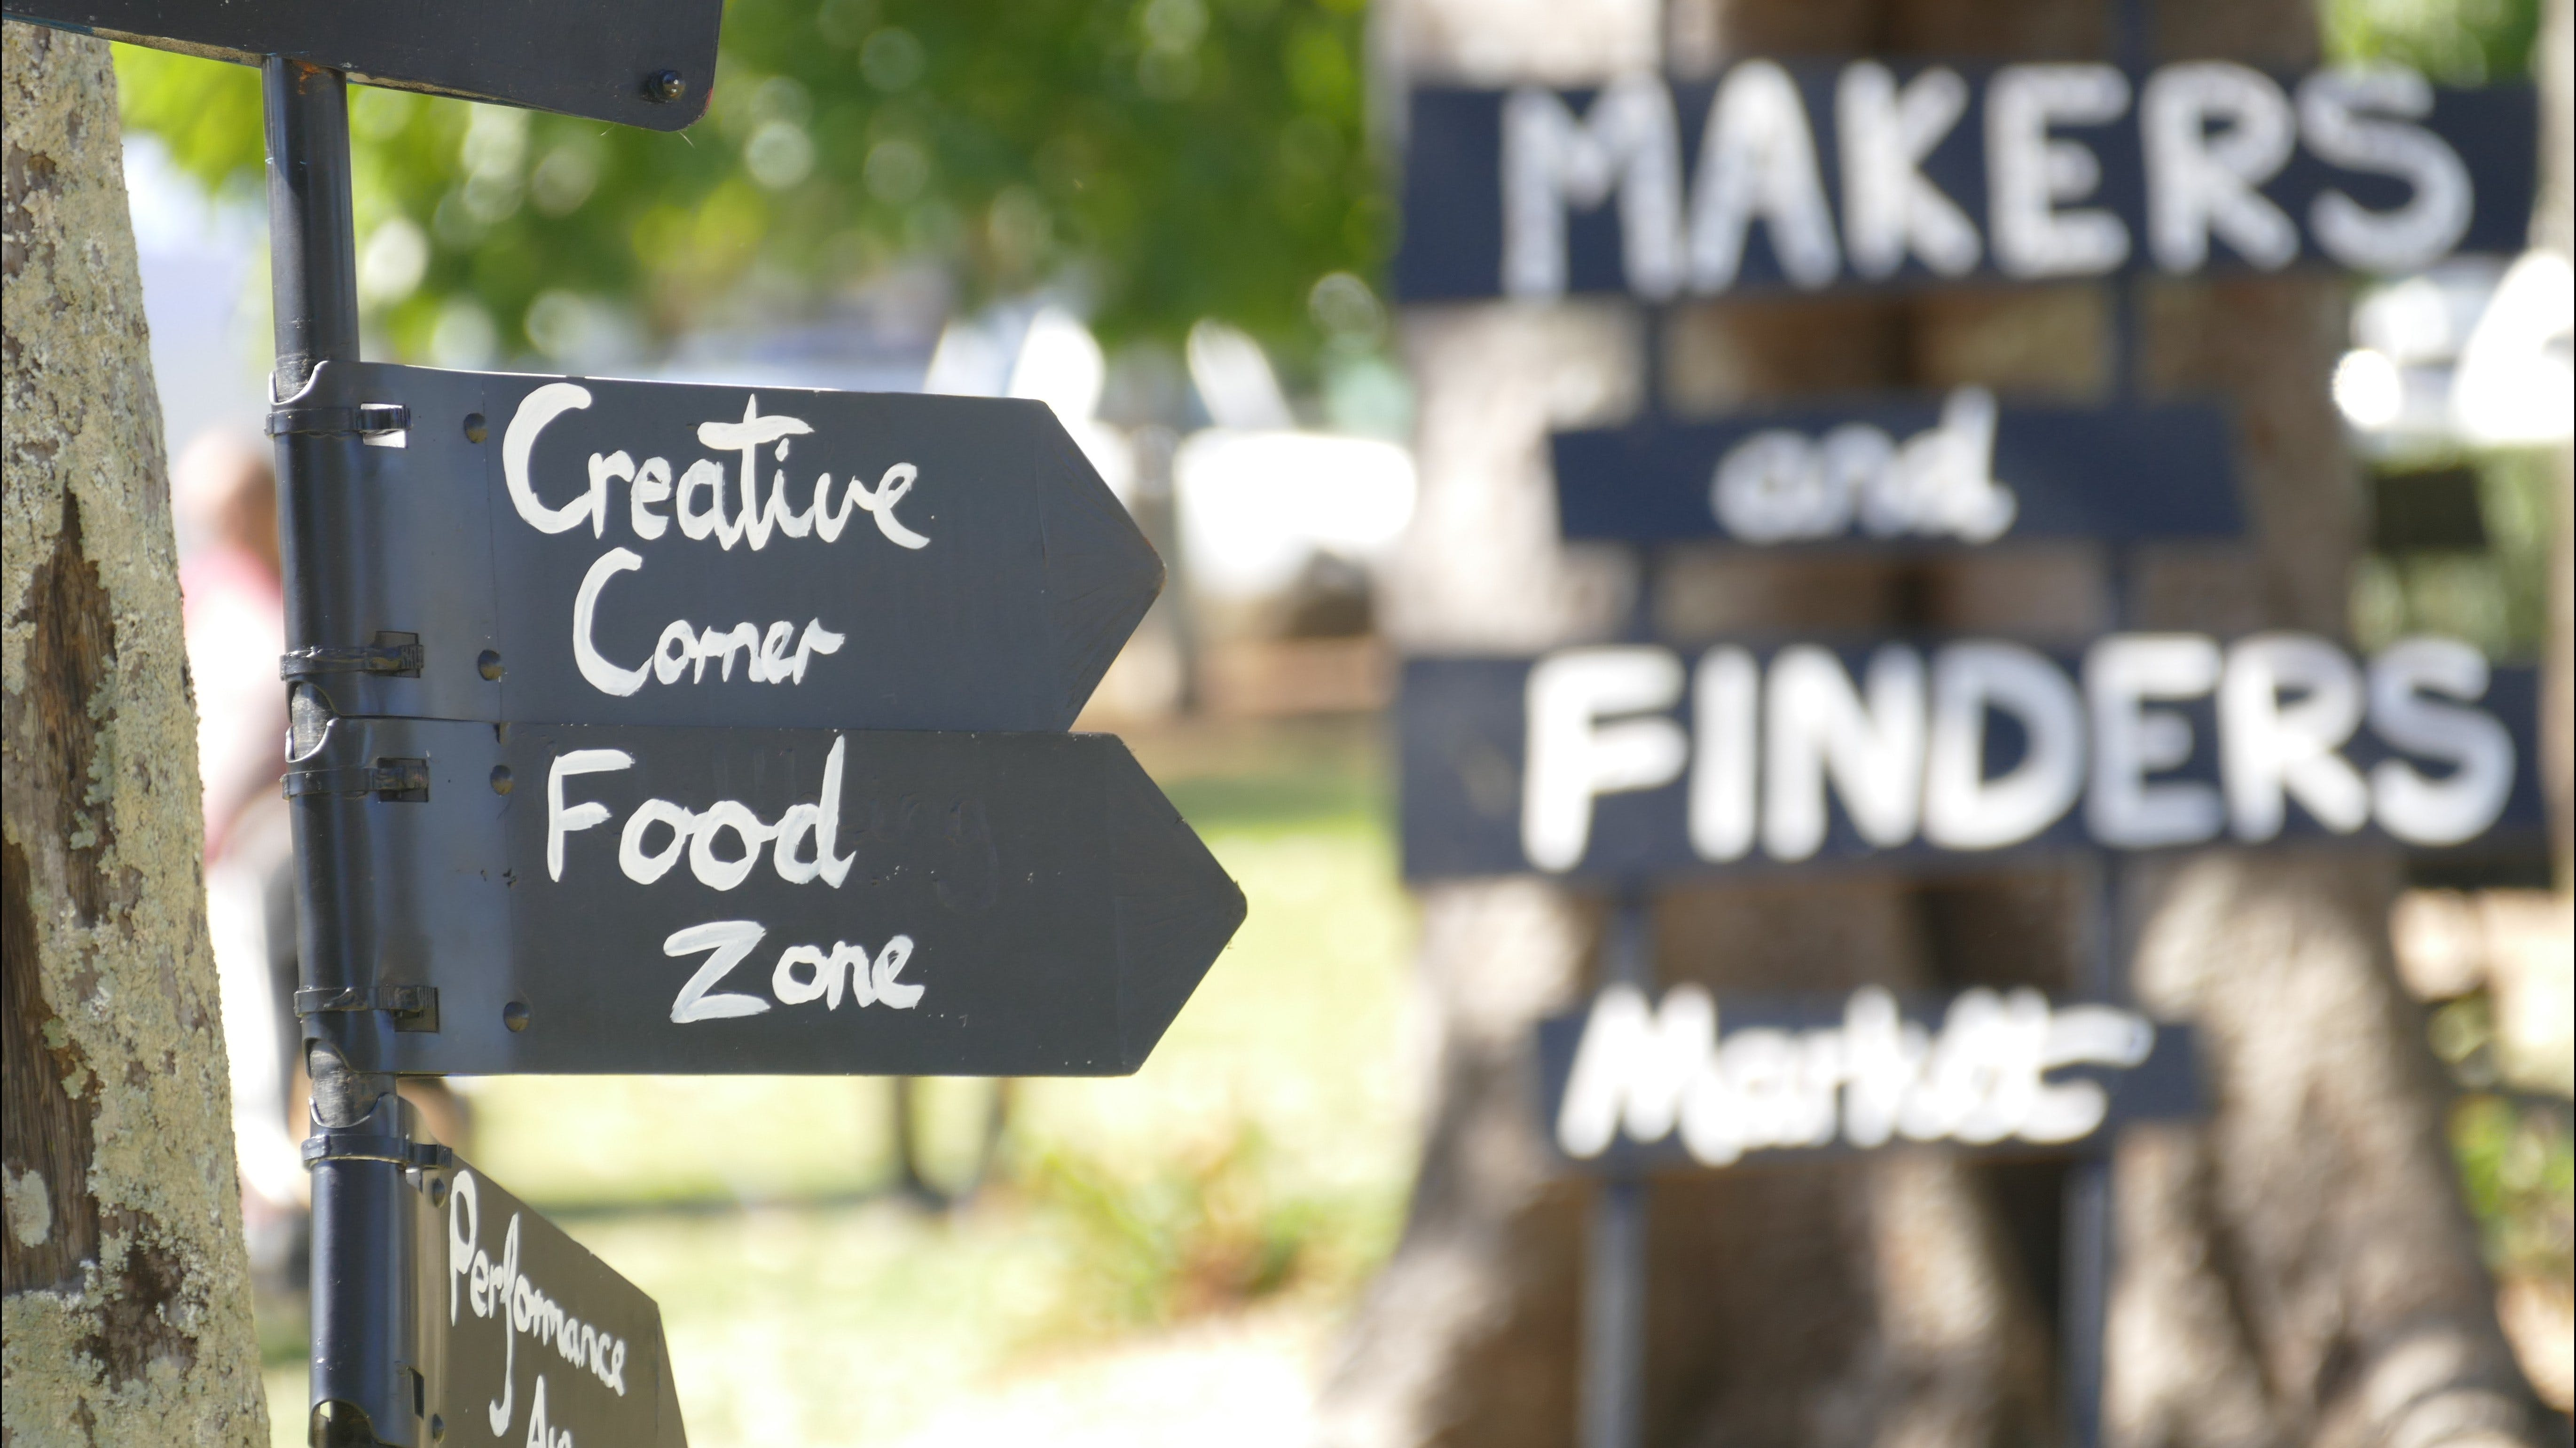 Makers and Finders Market Murwillumbah - Goulburn Accommodation